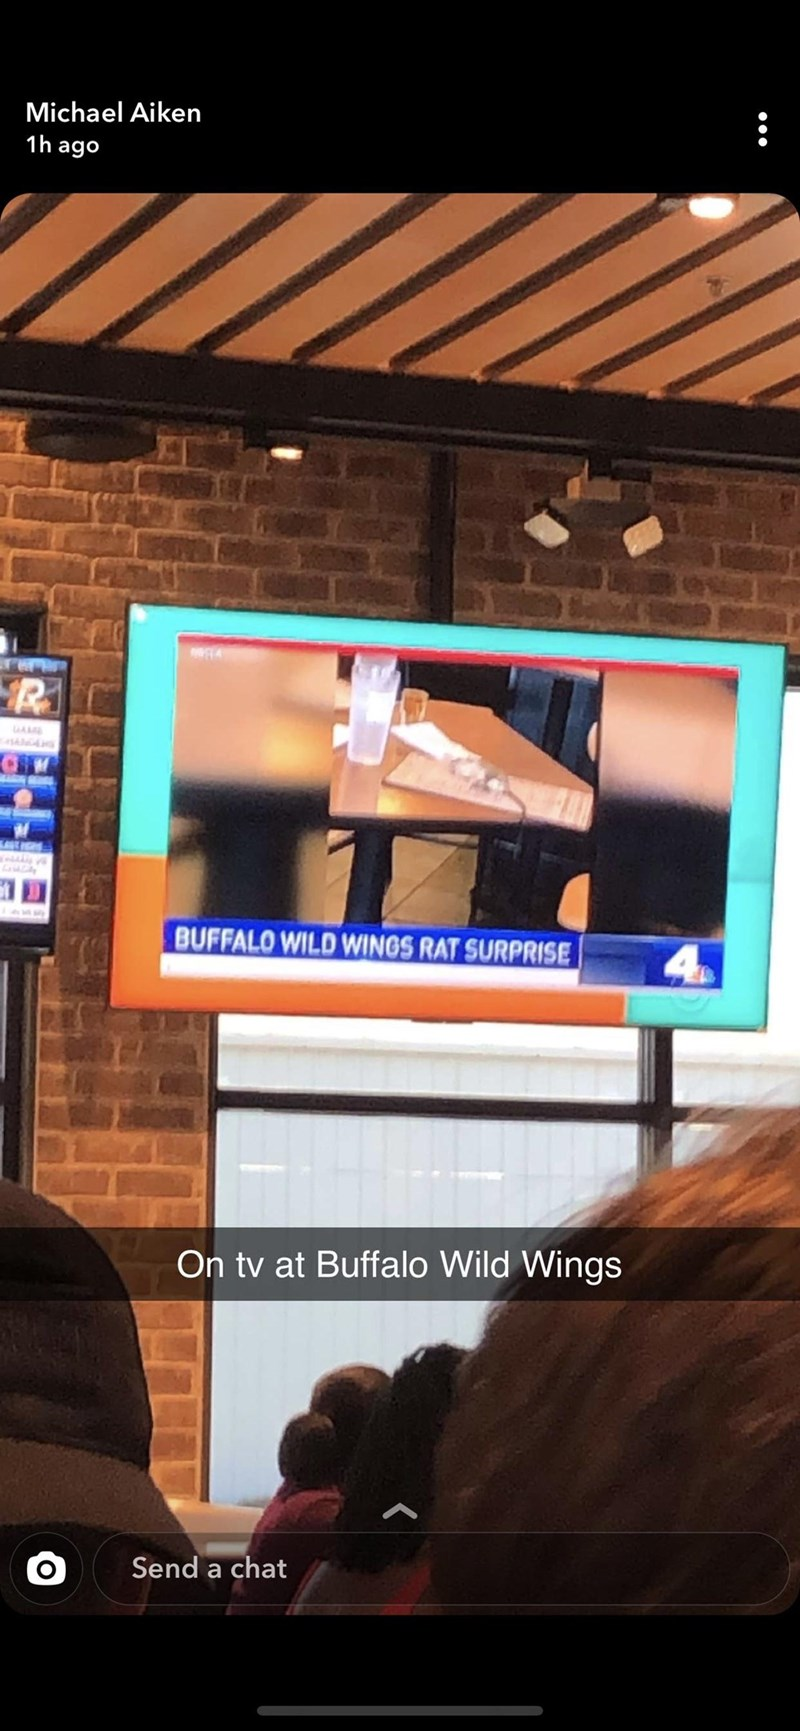 Display device - Michael Aiken 1h ago GA BUFFALO WILD WINGS RAT SURPRISE On tv at Buffalo Wild Wings Send a chat